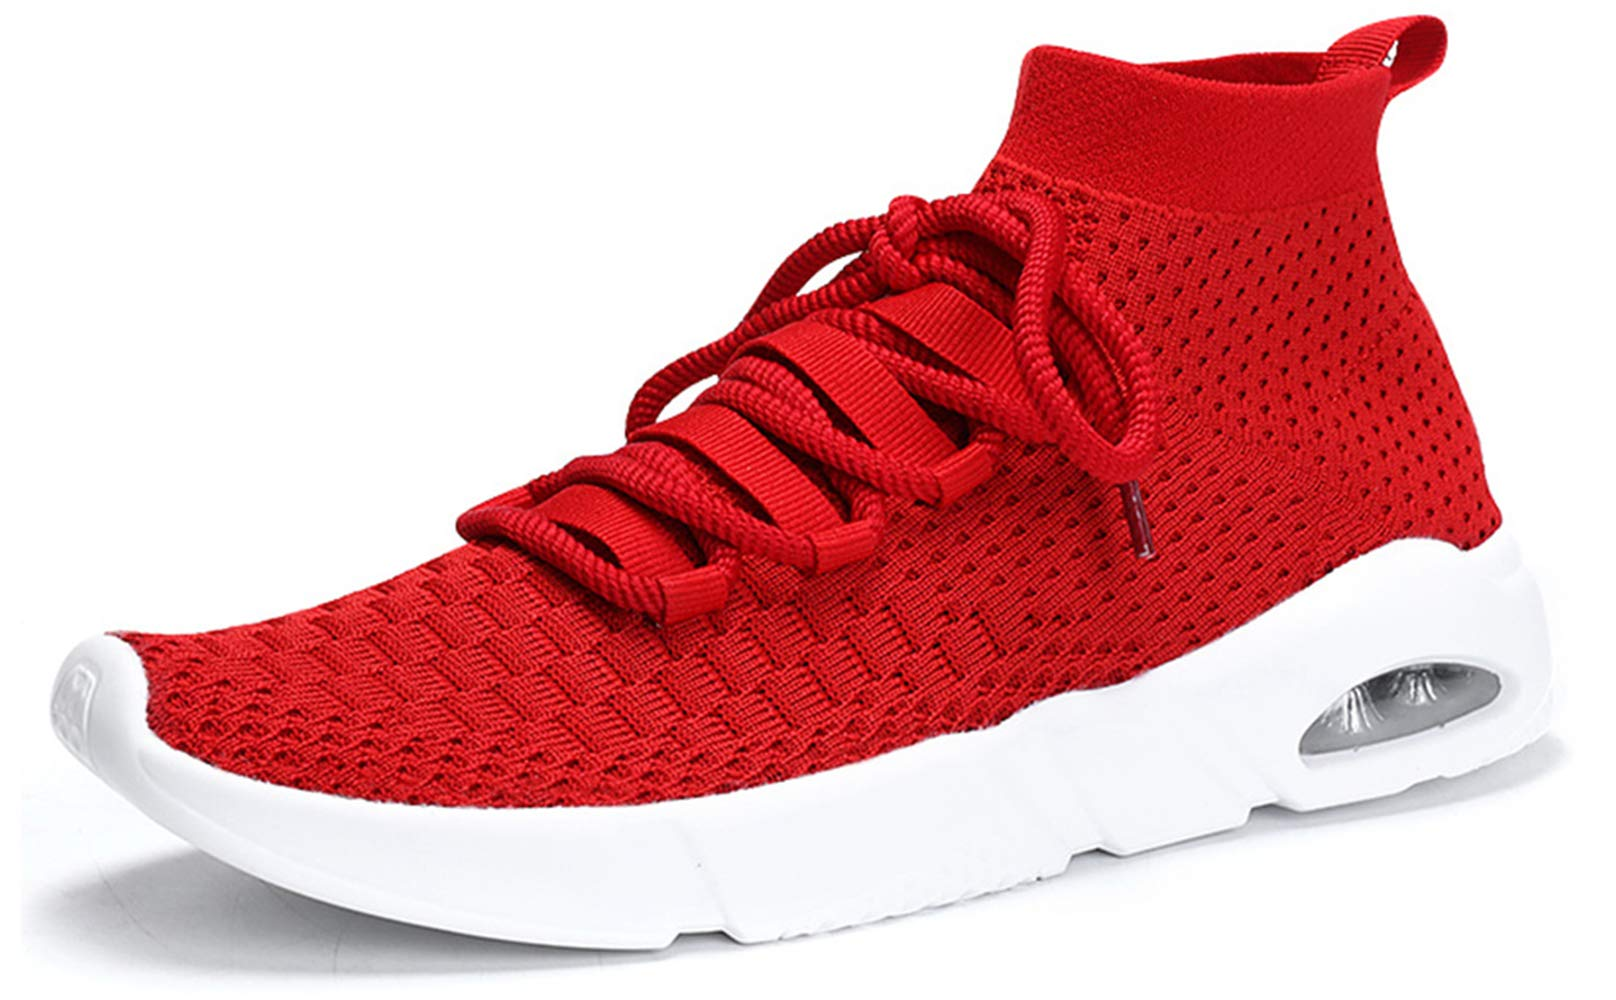 Ezkrwxn Men mesh Sport Walking Shoes Breathable Comfort Fashion Casual Tennis Trail Sneakers Gym Jogging Running Trainers Red Size 11 (1806-red-45)